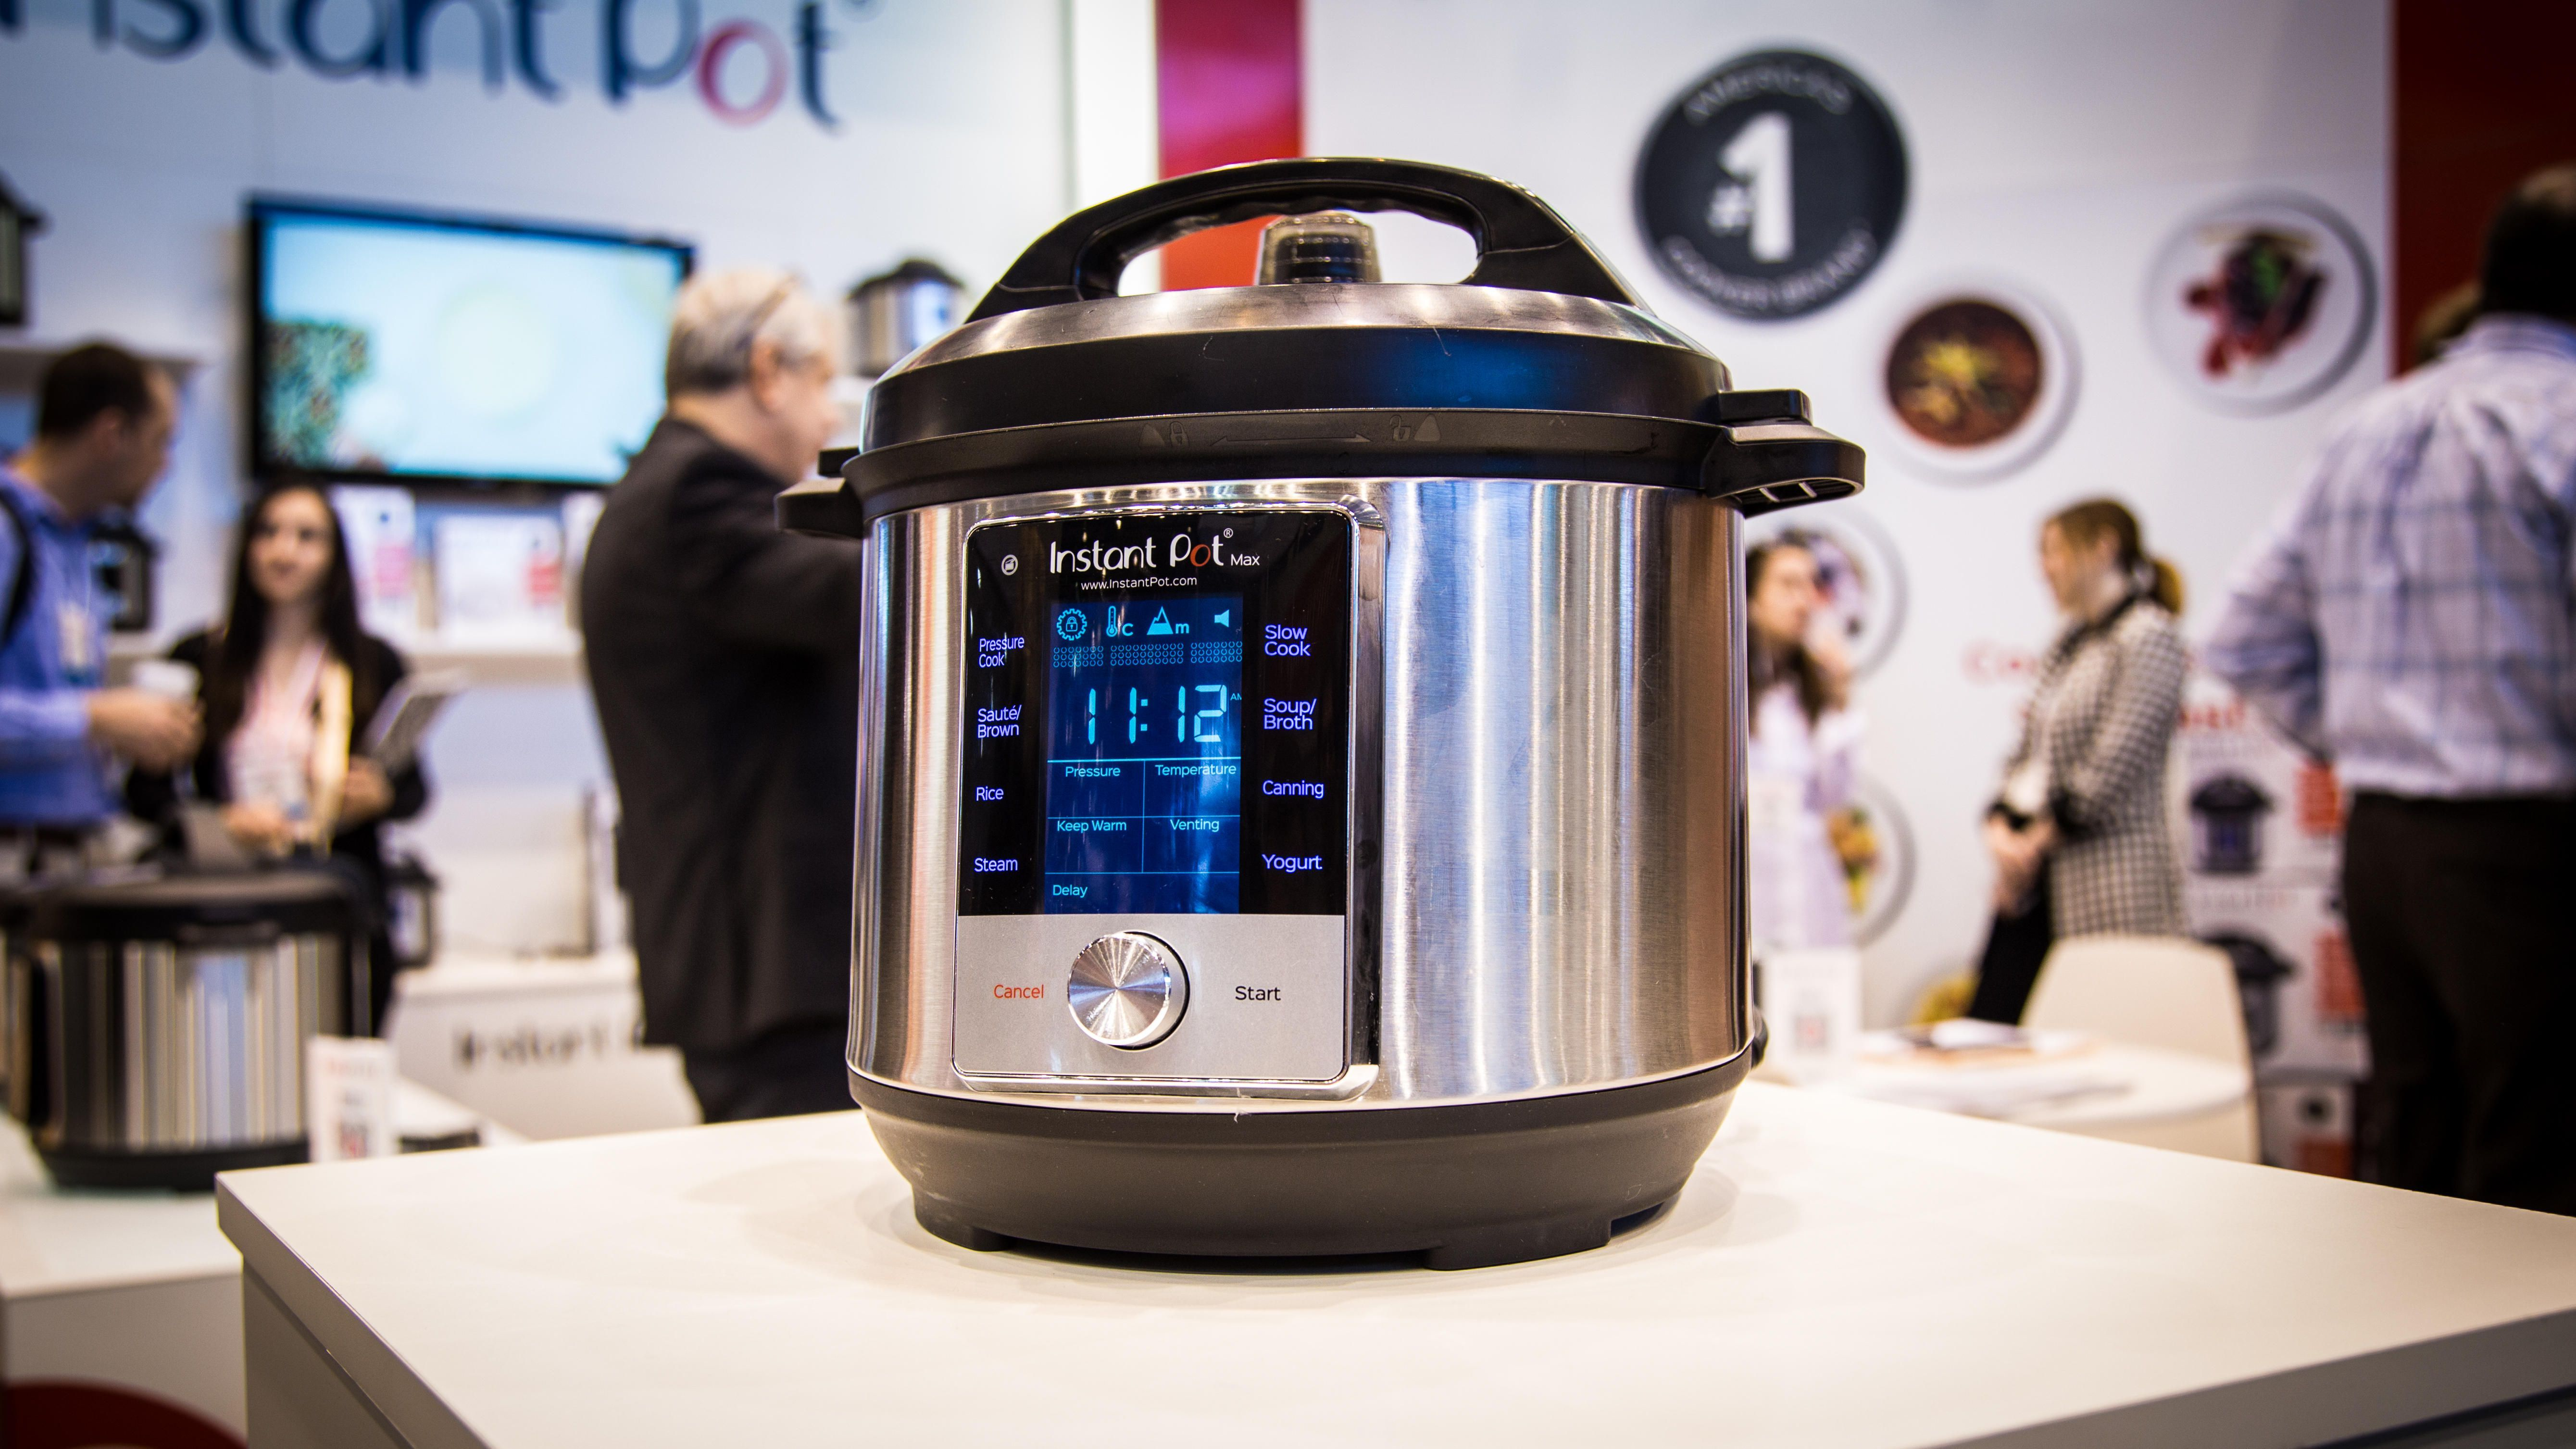 New Instant Pot Max cooks faster, with more features